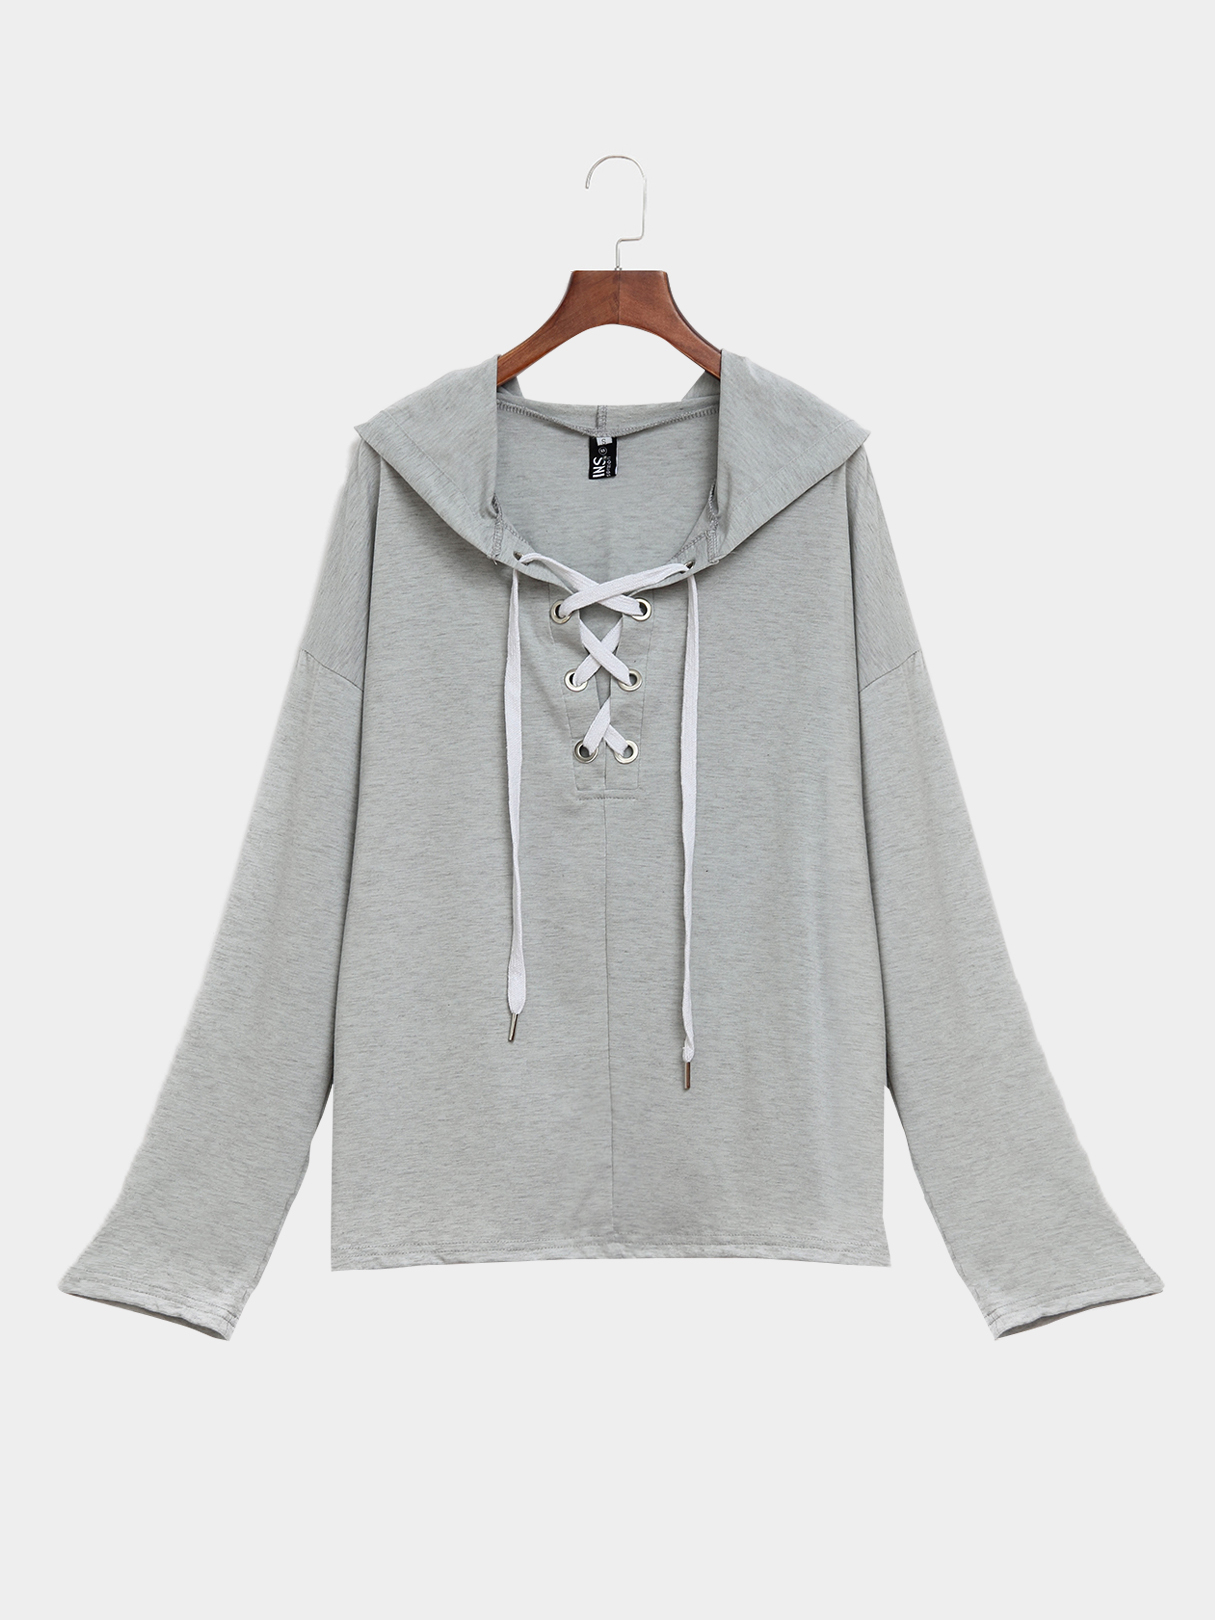 Grey Long Sleeves Lace-up Design Hoodie